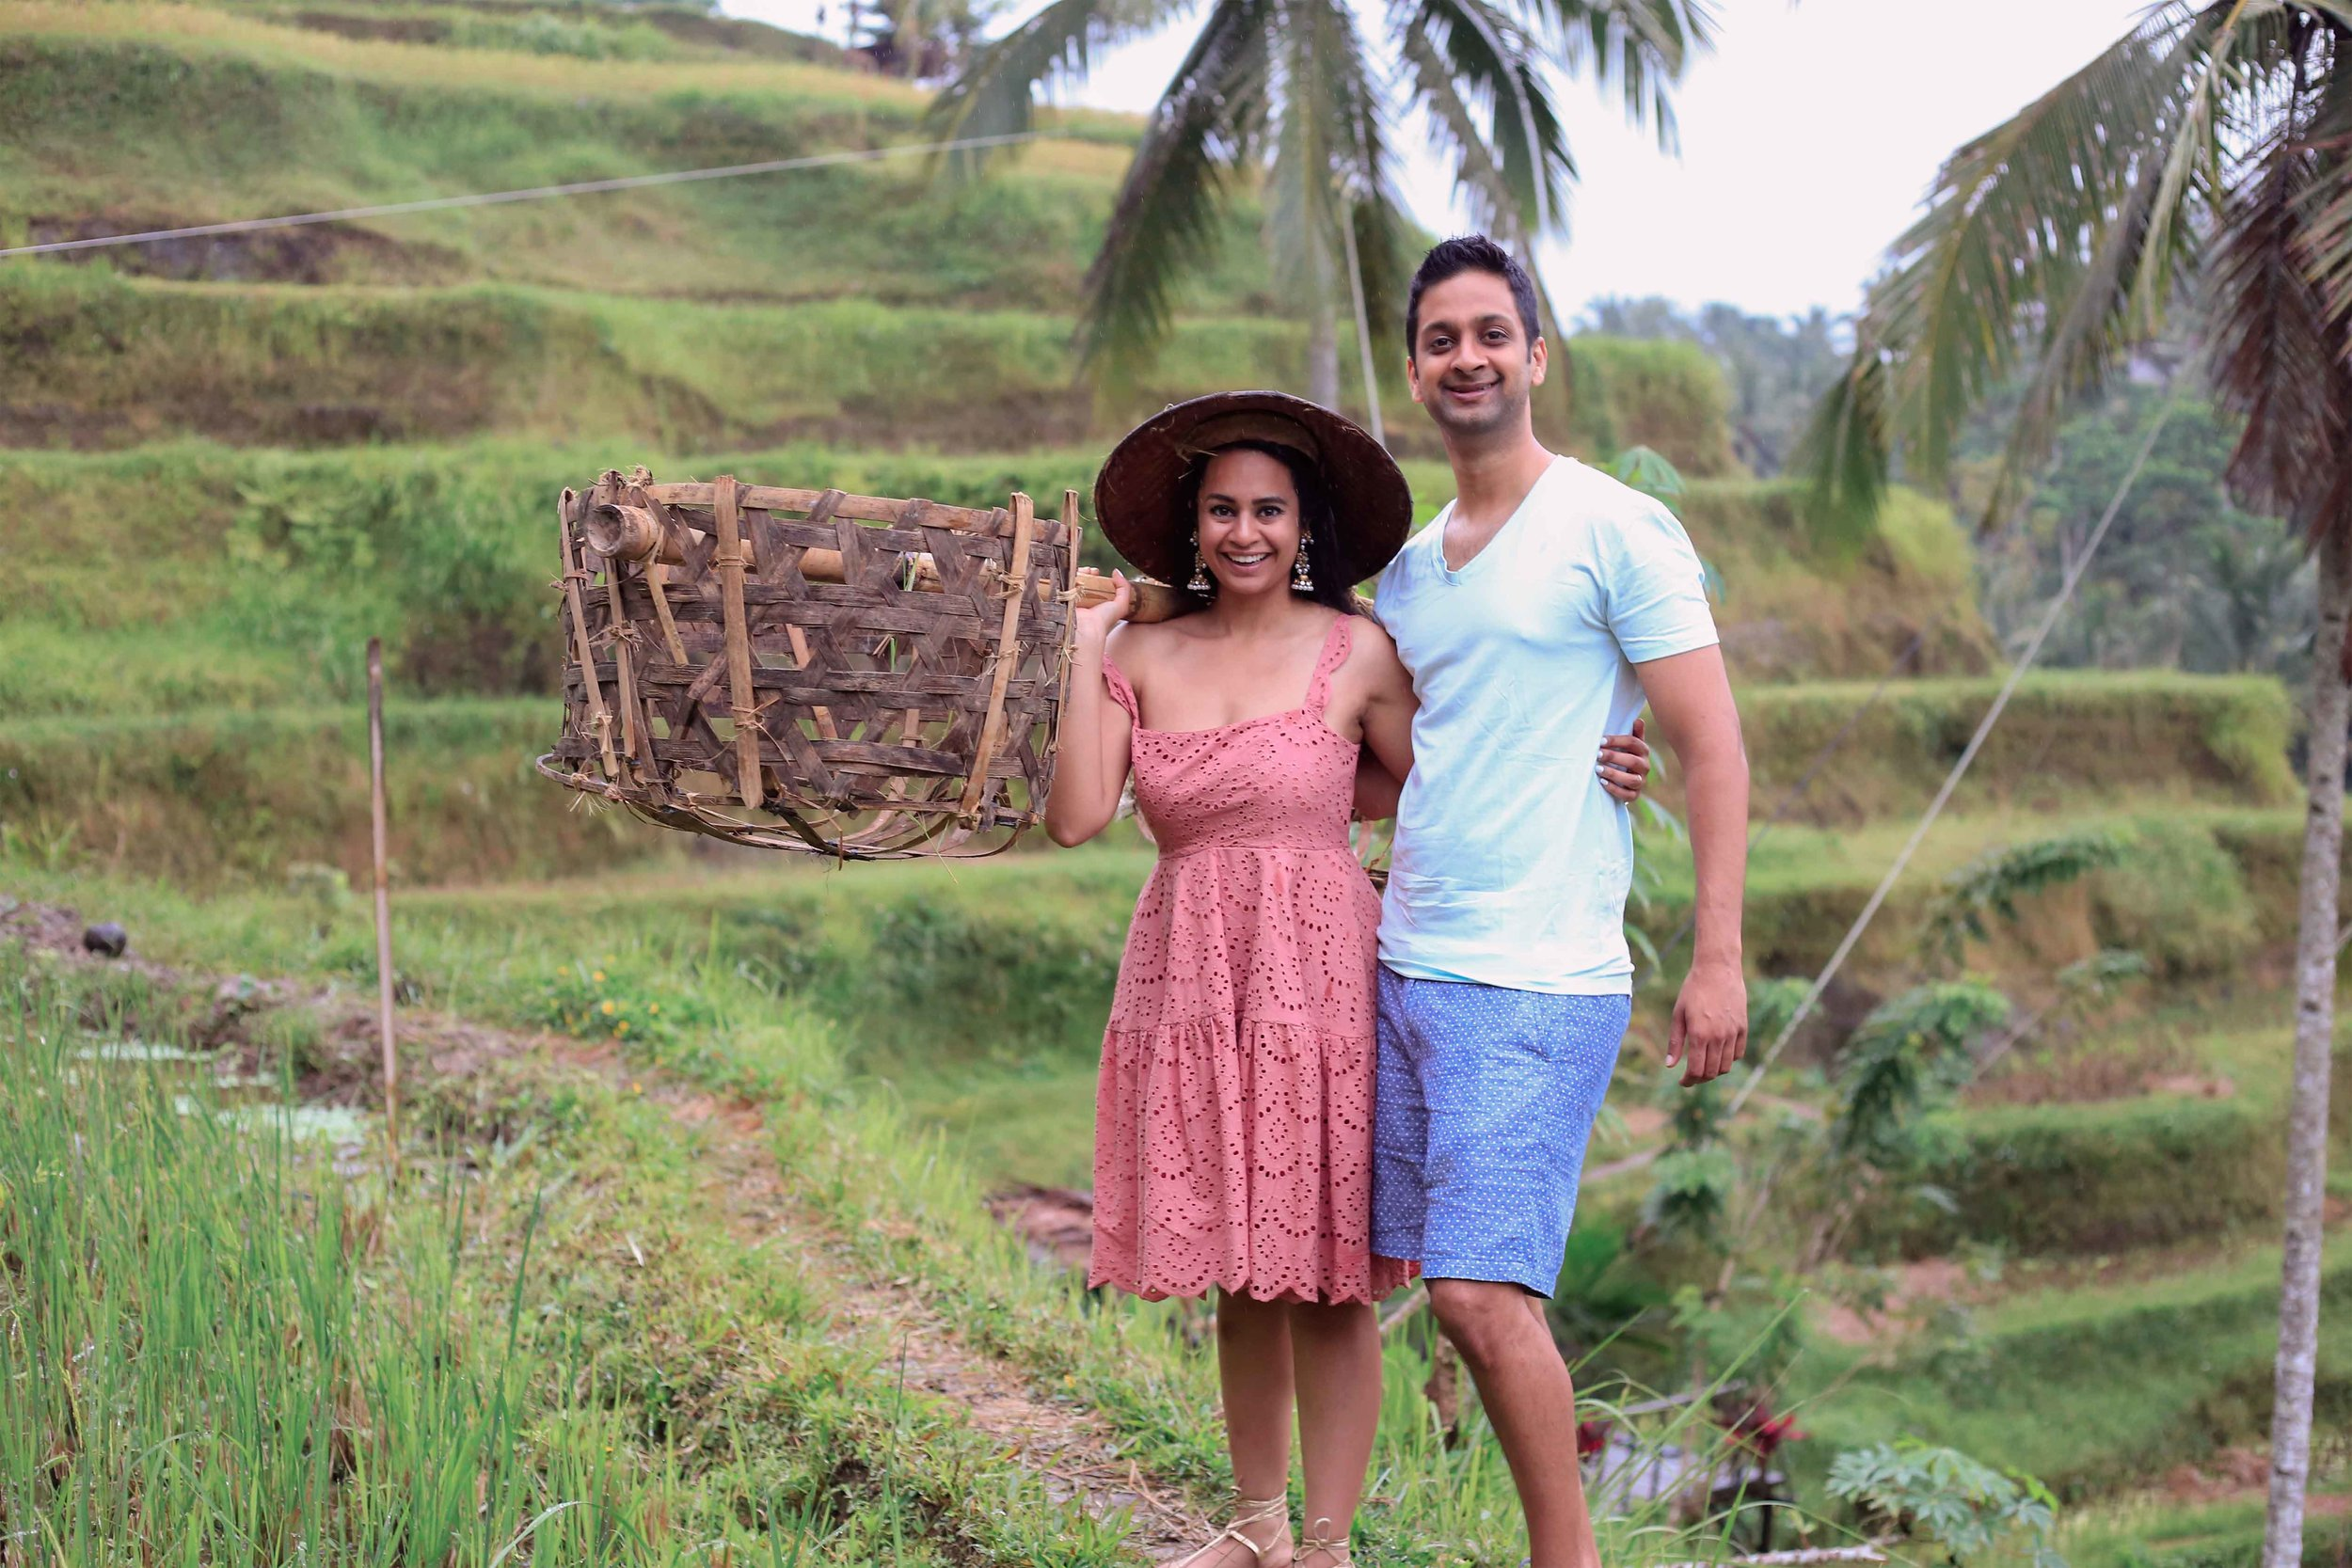 Tegallalung Rice Field Ubud Bali 5 Day Travel Guide Vegetarian Itinerary